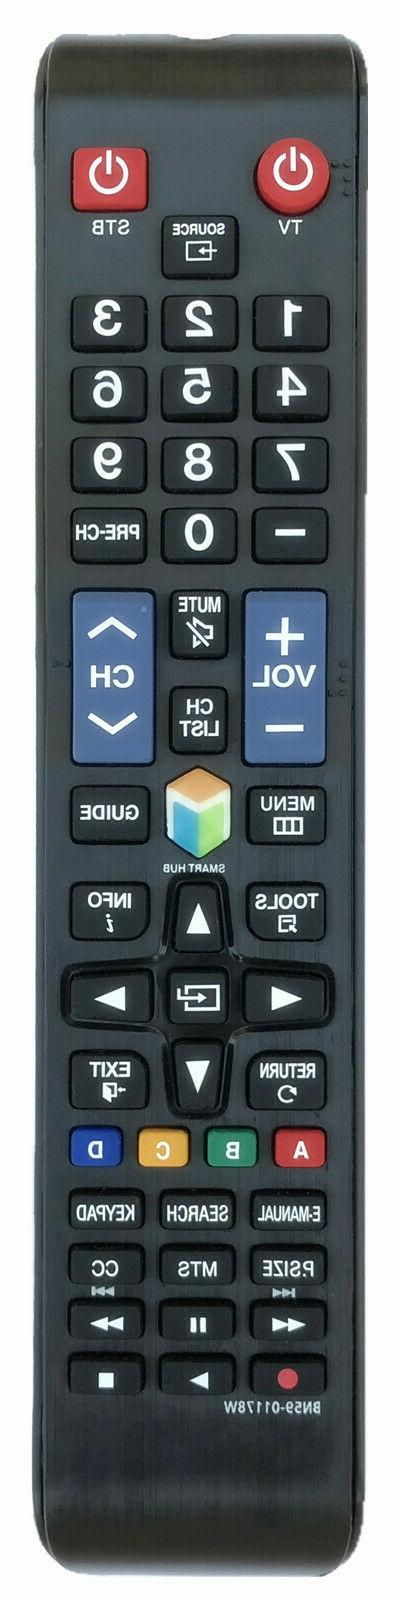 new remote control aa59 00582a fit